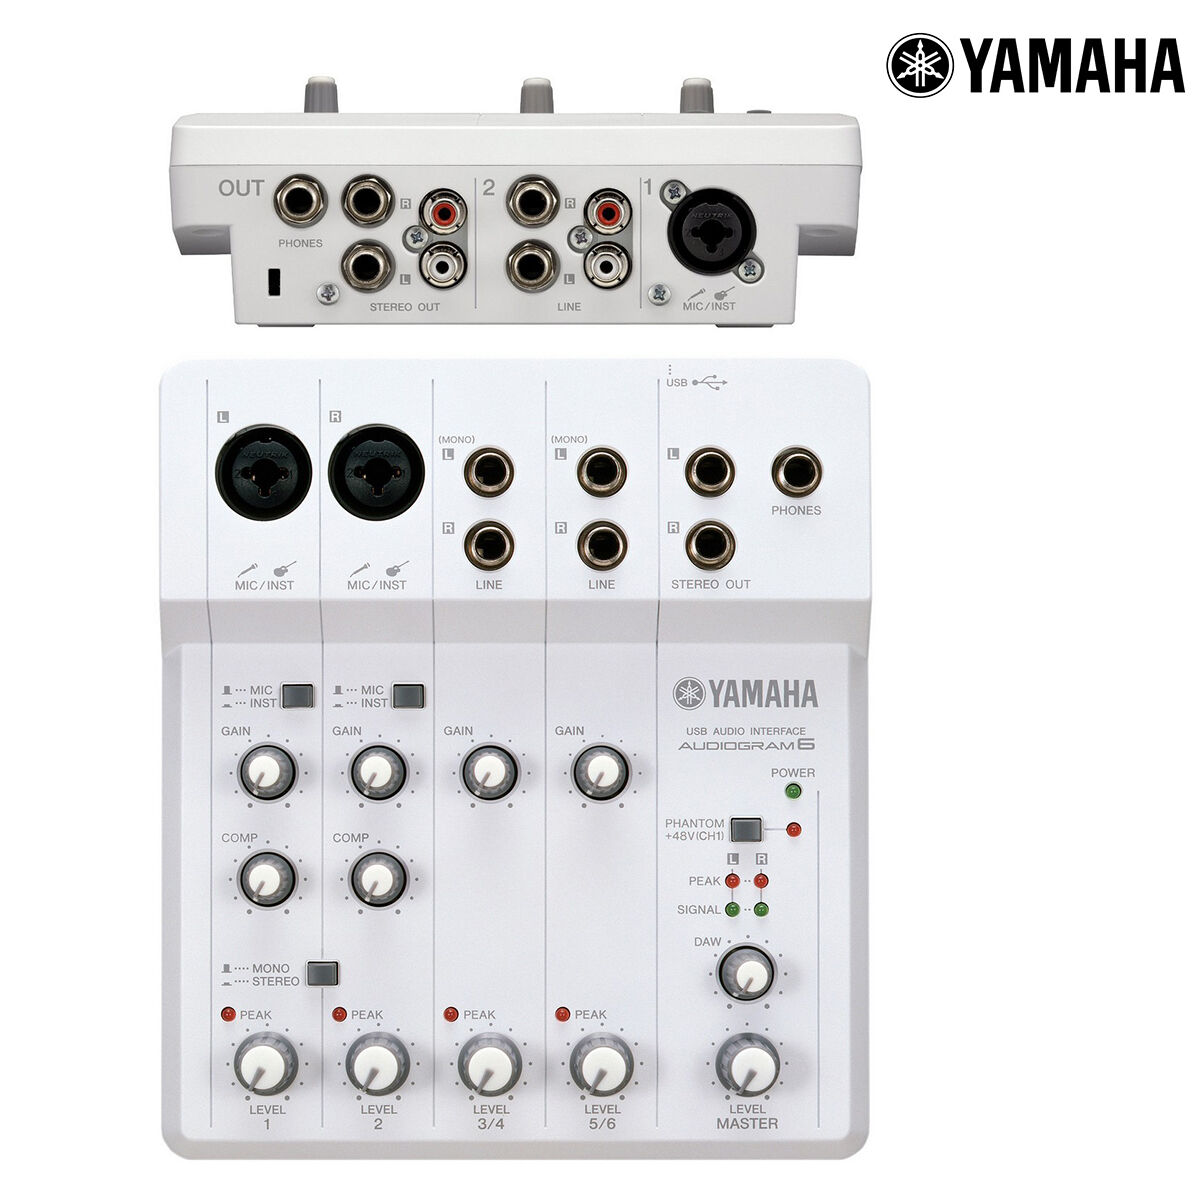 yamaha audiogram 6 usb audio recording interface mixer ag6 l authorized dealer 86792884592 ebay. Black Bedroom Furniture Sets. Home Design Ideas